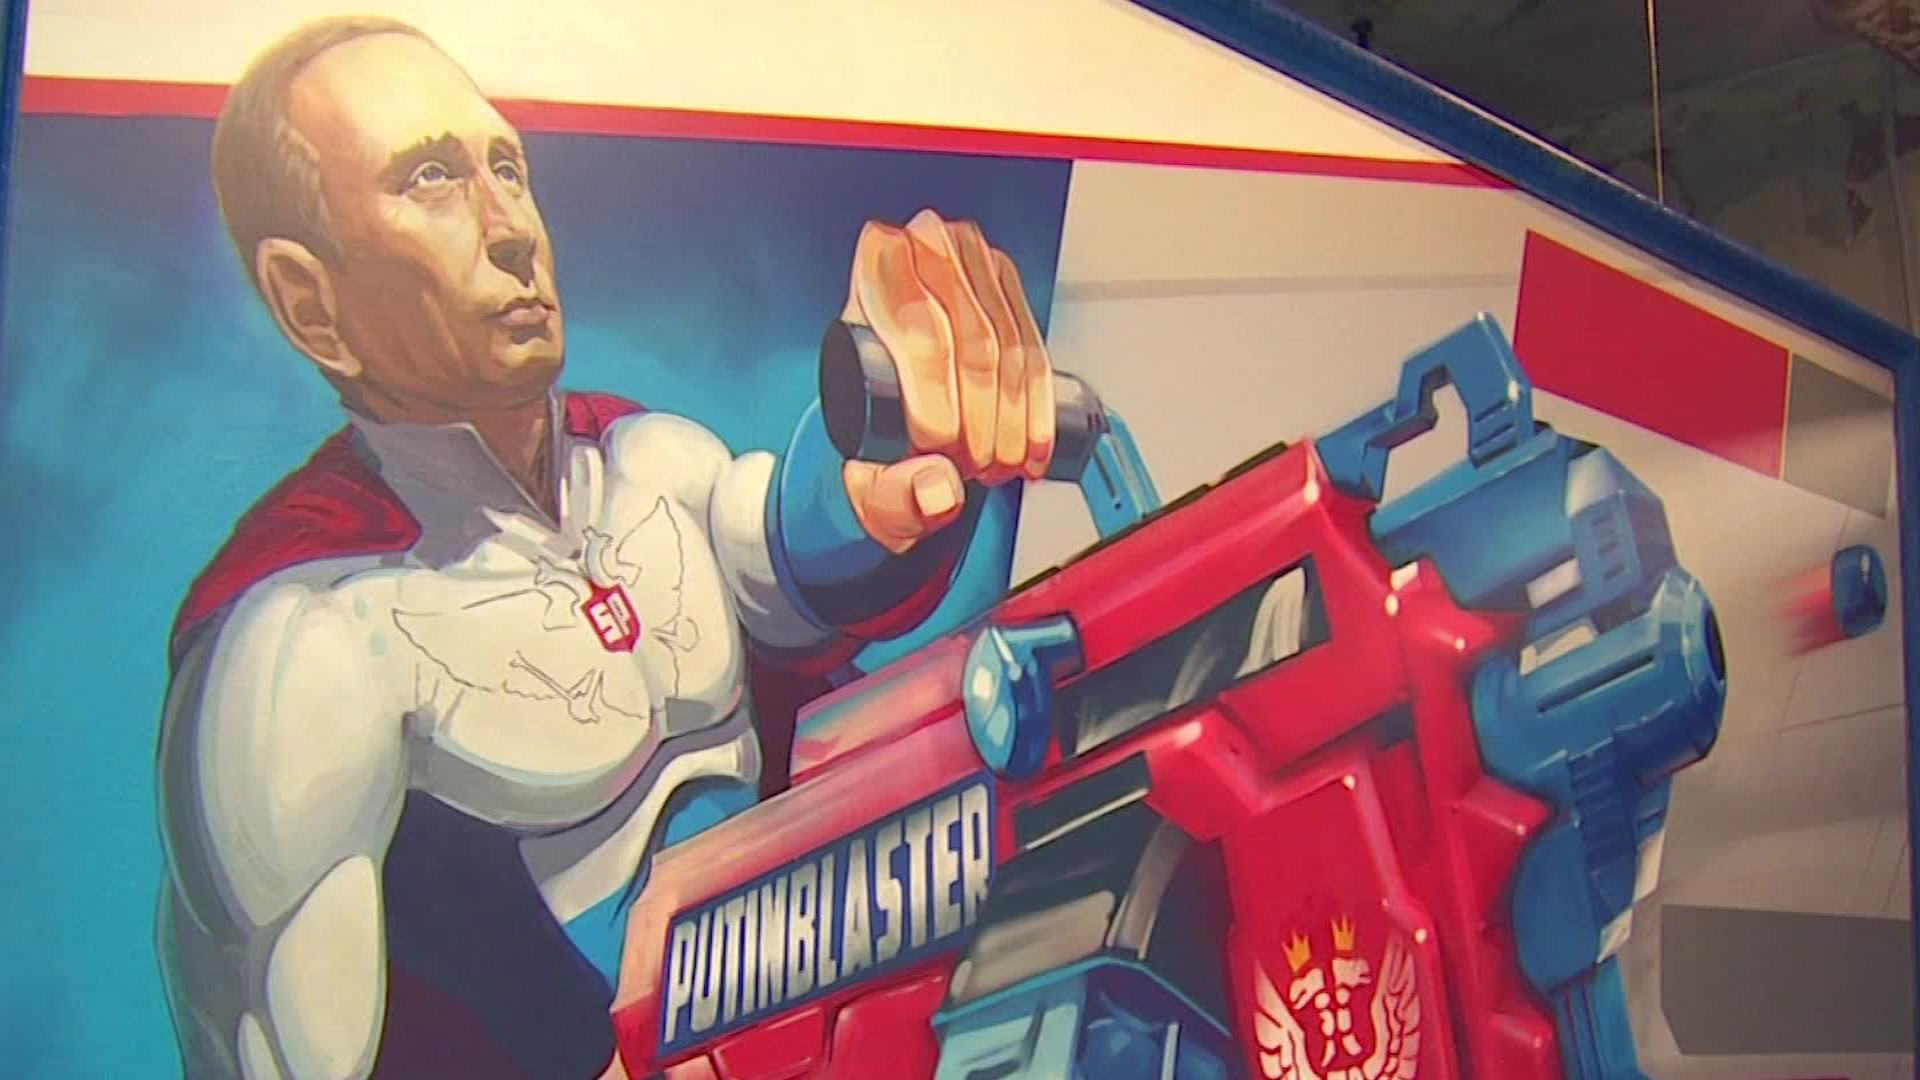 Exhibit Portrays Putin As Superhero Cnn Video